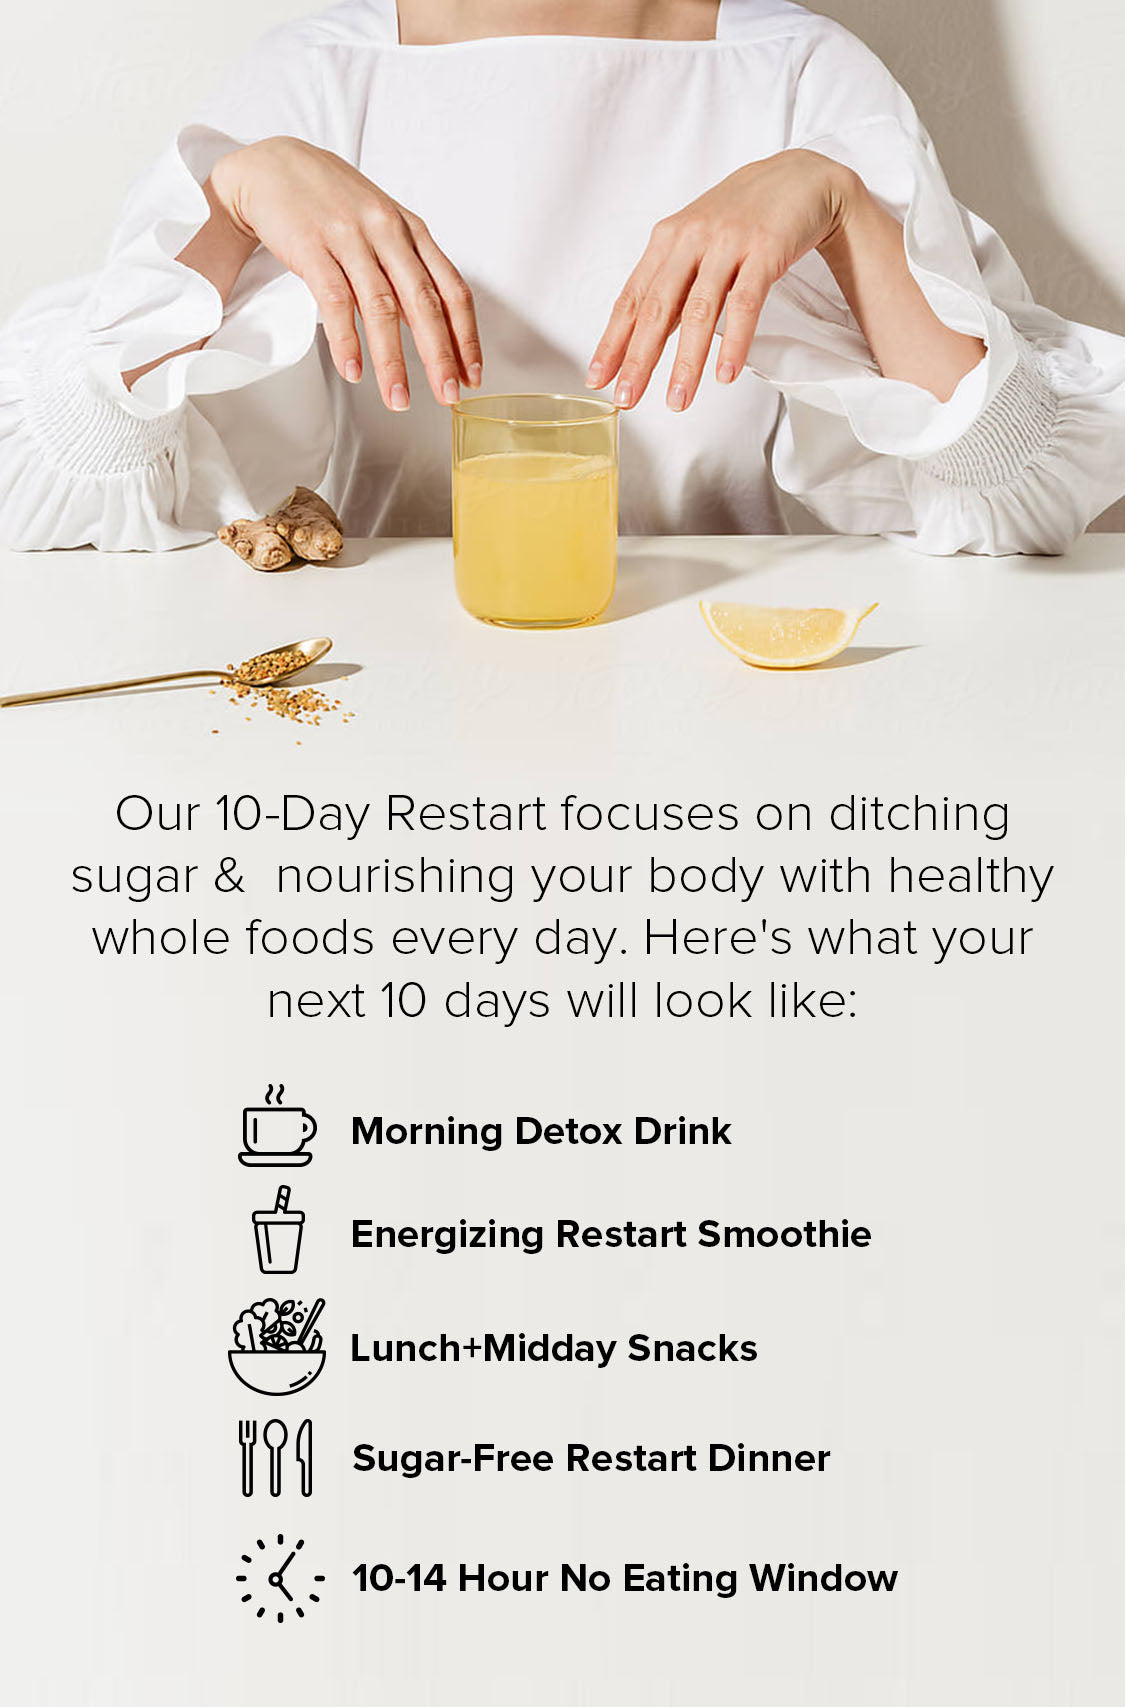 A Day on the 10-Day Restart: SUGAR DETOX PLAN